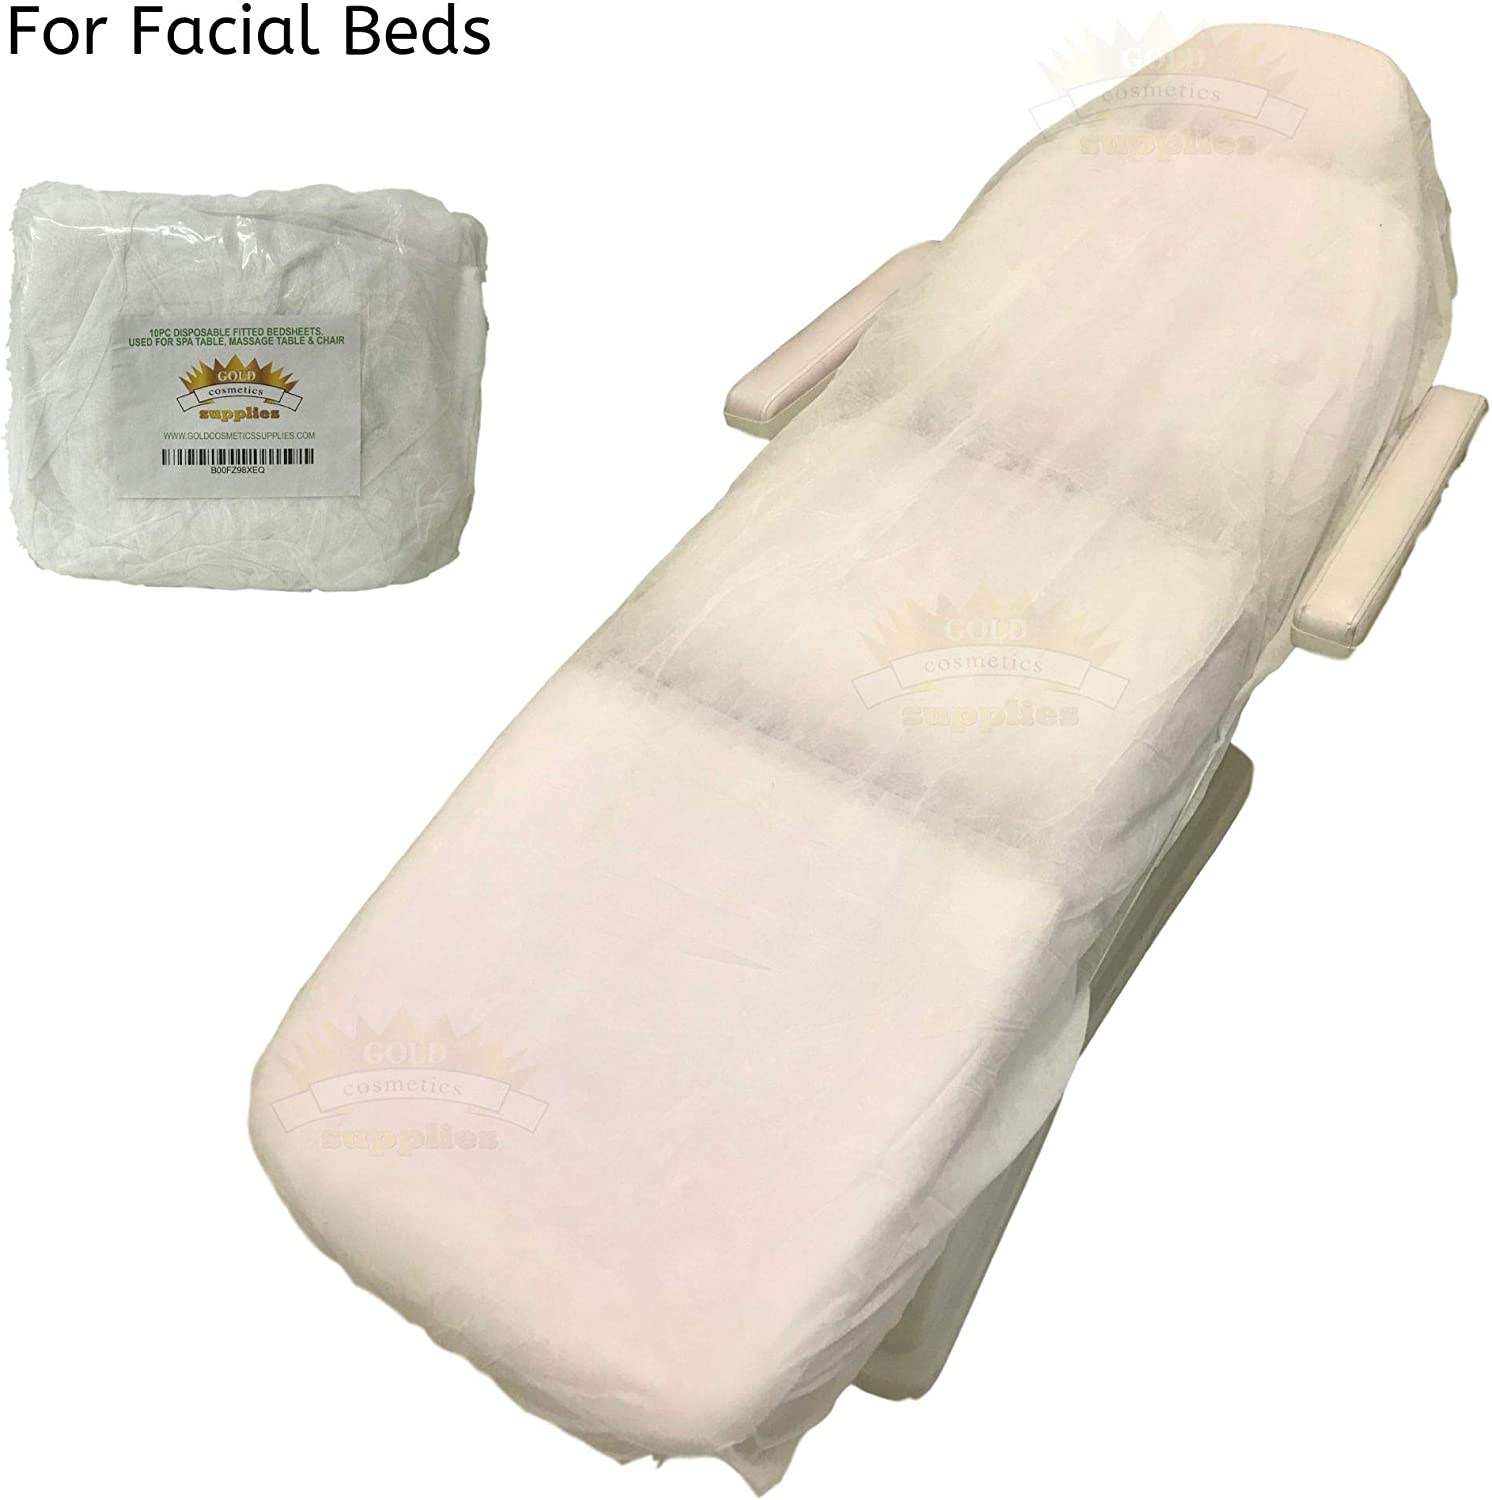 100 Ct. White Disposable Elastic Fitted Bett Sheets für Cover Massage Table Facial Chair Spa